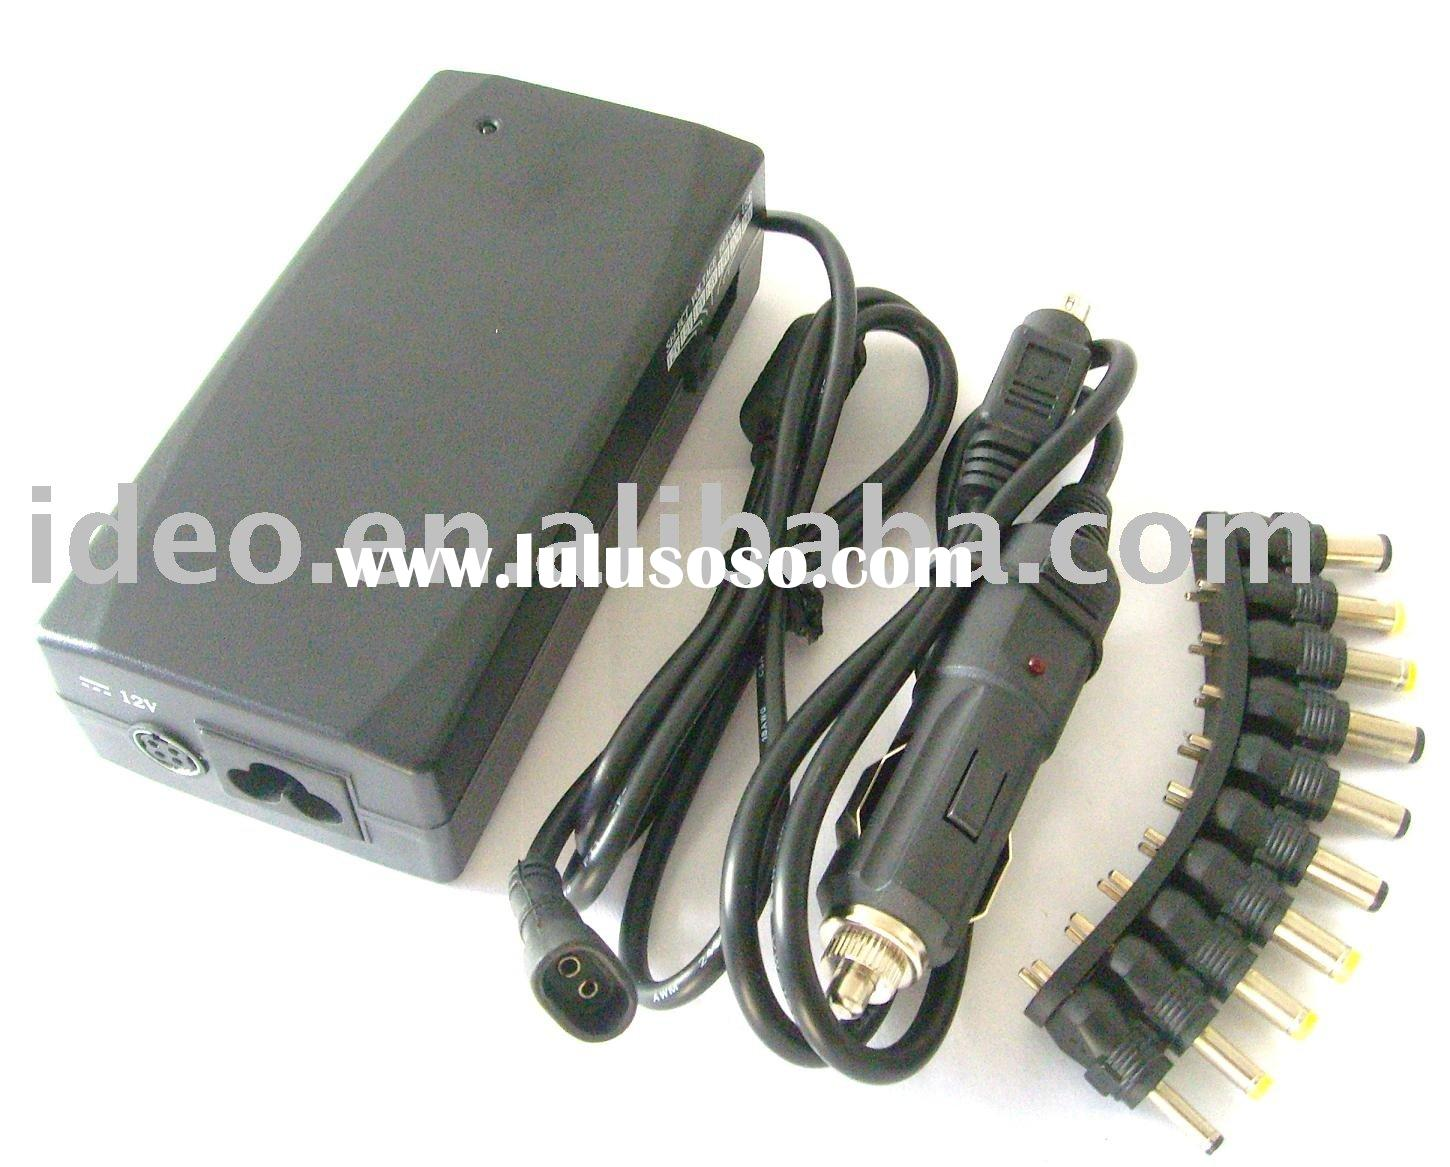 power adapter,adapter,connector,graphic adapter,power adapter,power supply,adaptor,ac adaptor,laptop